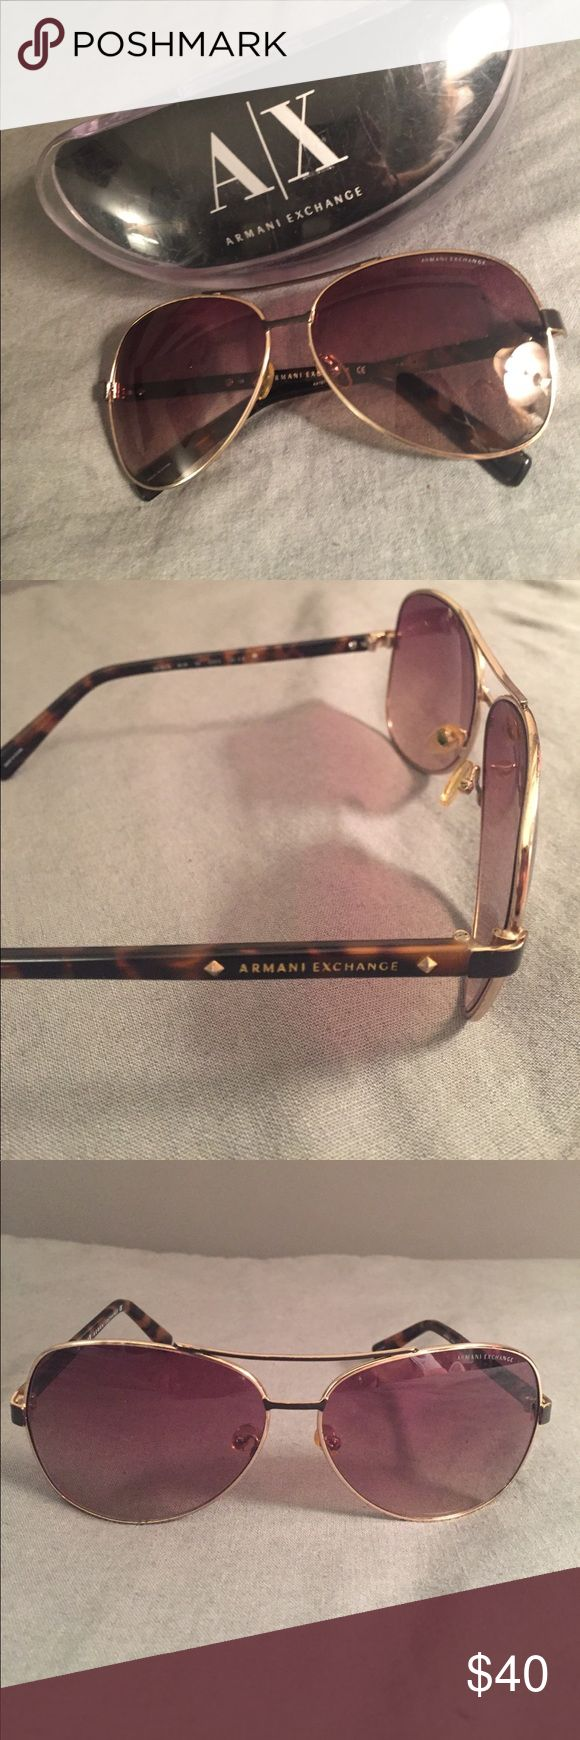 ✨Armani Exchange Aviators ✨ Authentic Armani Exchange aviator style sunglasses. Tortoise shell + gold coloring. Purchased from store but have been worn. Minor scratches on lenses, but nothing that would affect sight.  One arm slightly bent (as seen in photo), but fit on the face just fine. Sold with case!! Armani Exchange Accessories Sunglasses